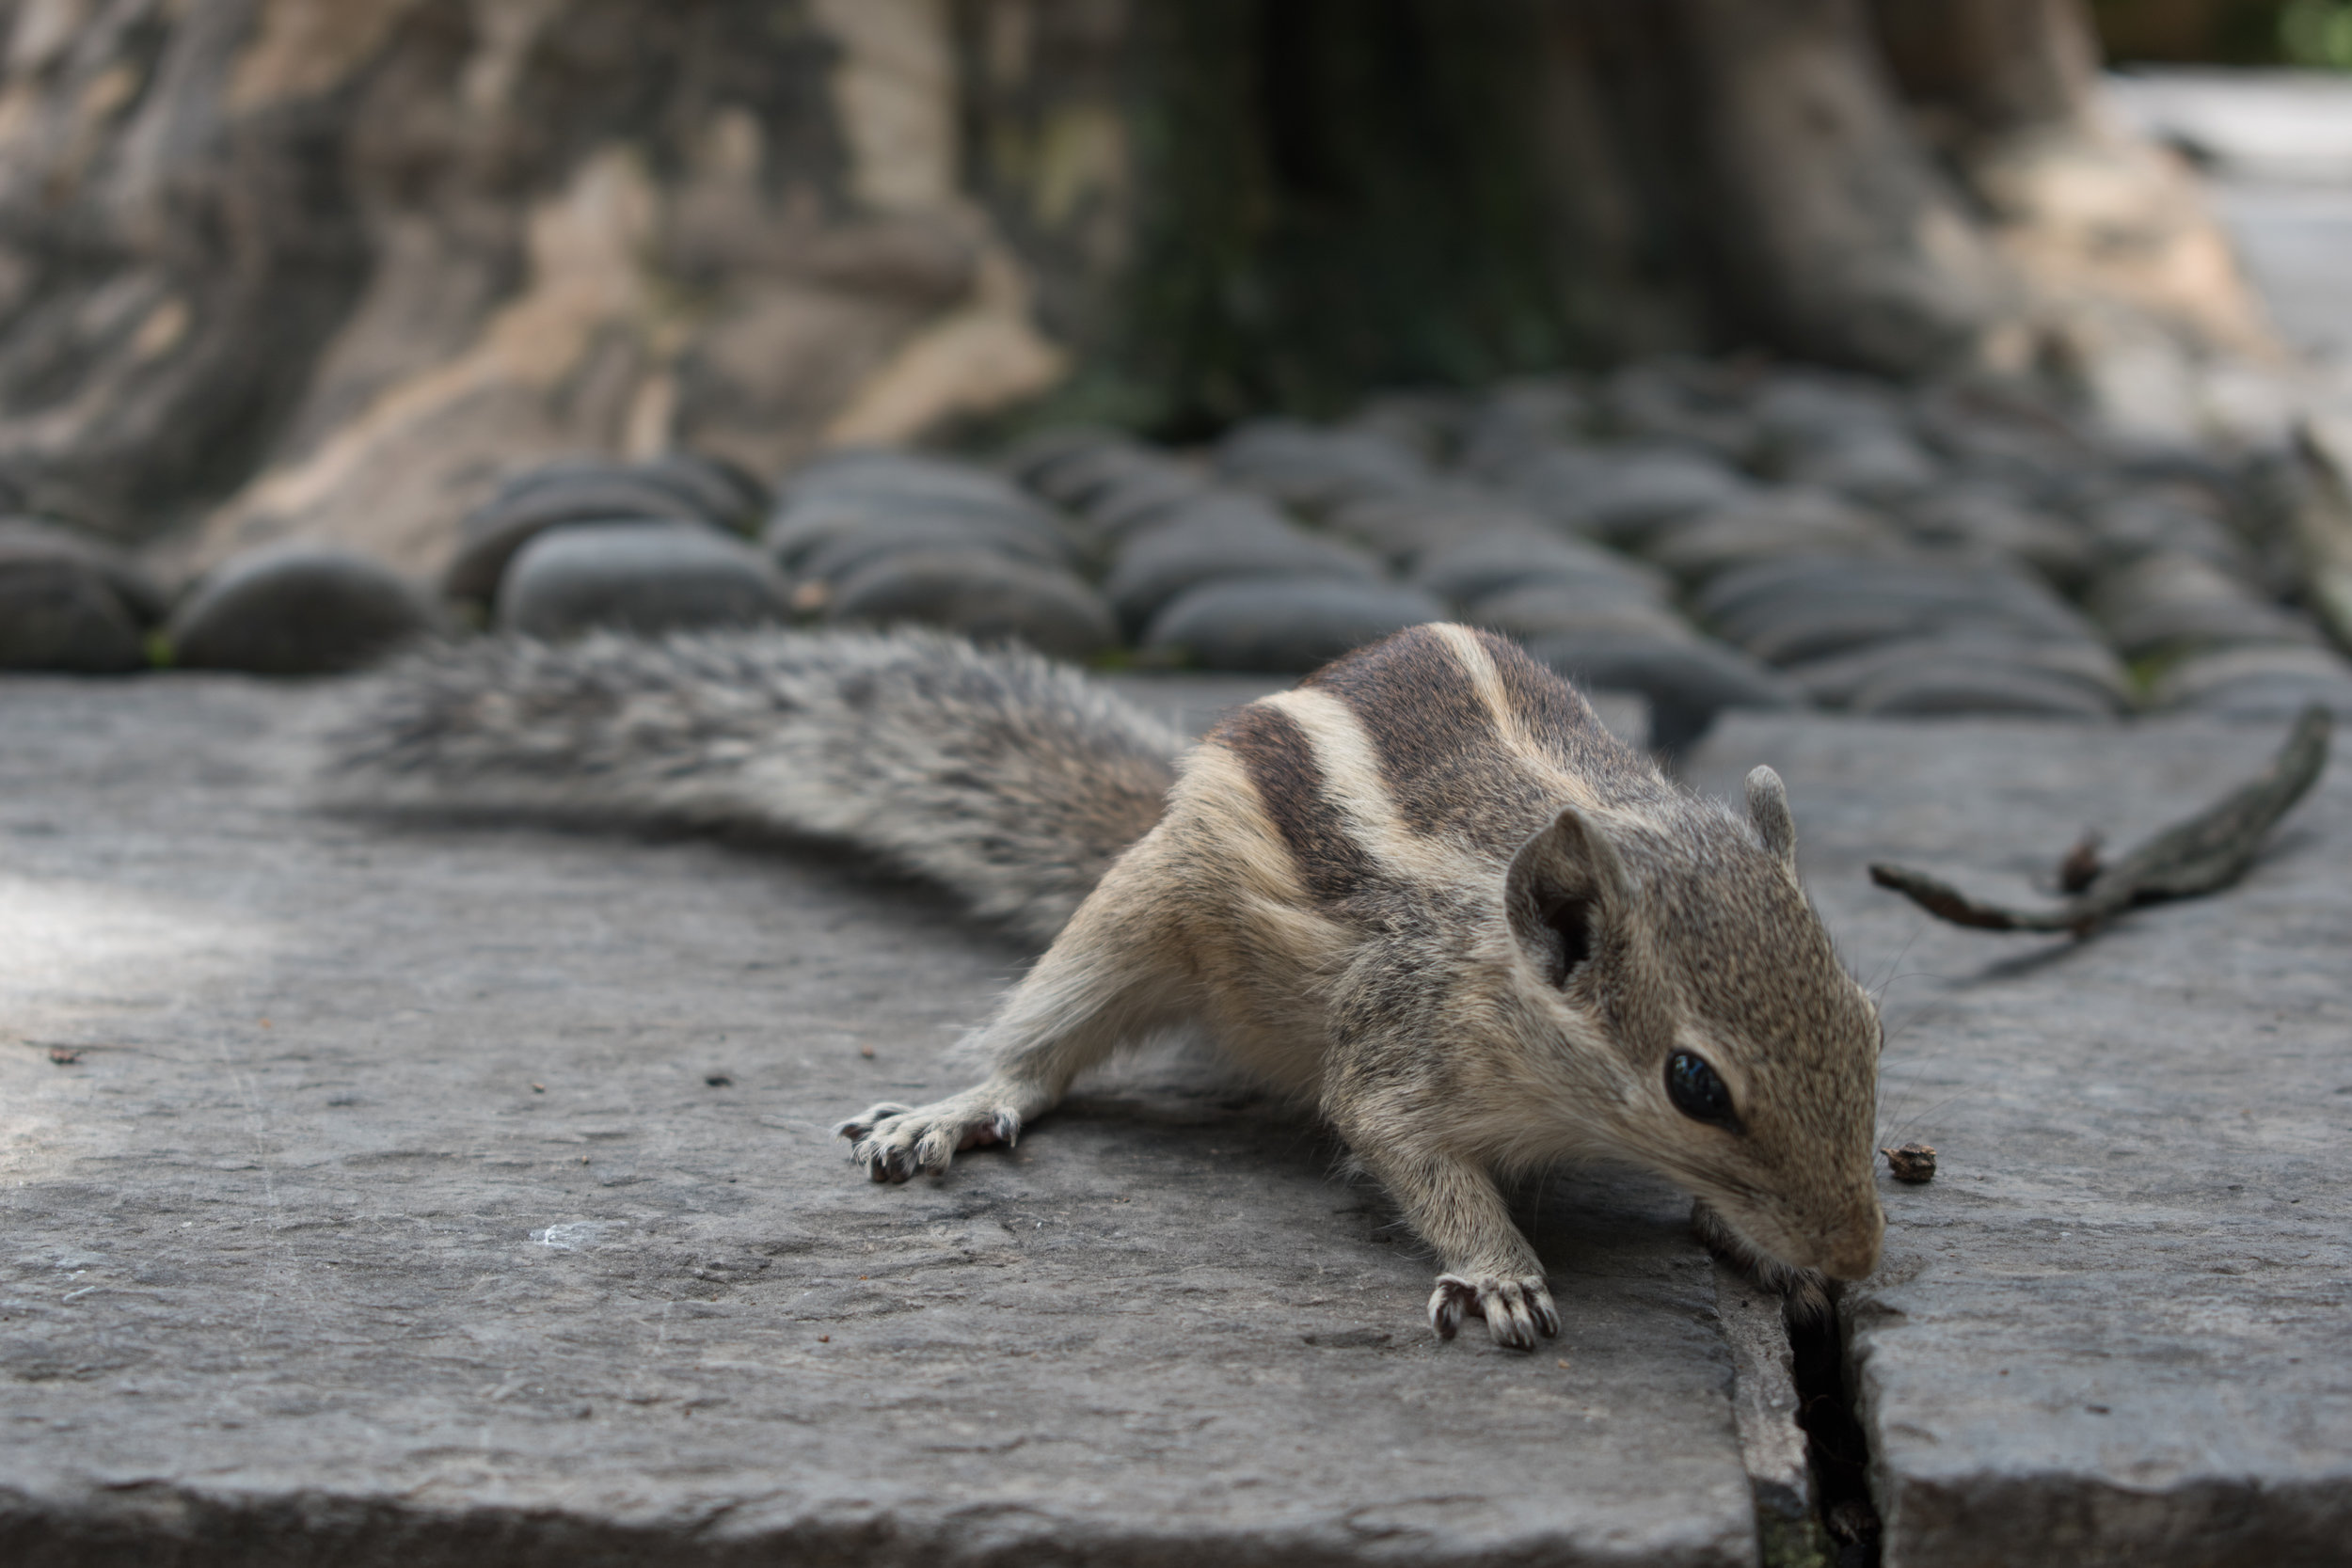 A Chipmunk In The Garden Of Dreams, Nepal